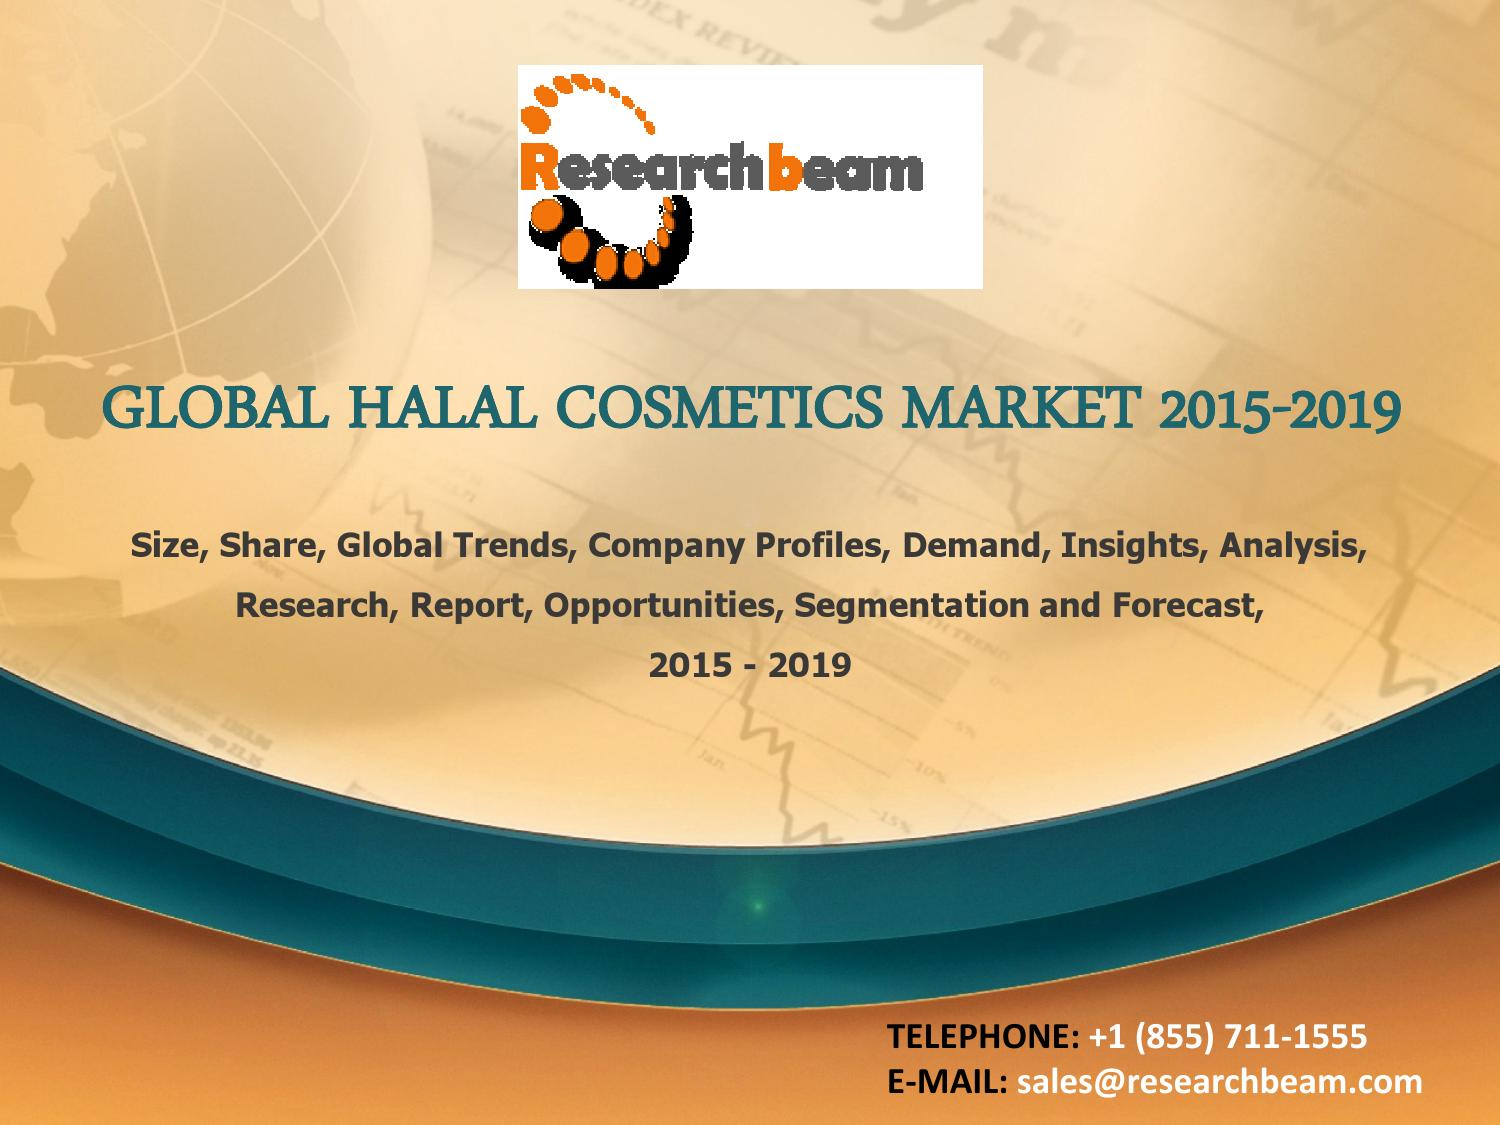 latest report cosmetics retail market in central Total sales of cosmetics in central europe are forecasted to grow by 15% in 2012, compared to 23% last year, says market research firm pmr publications patrycja nalepa, pmr publications the economic environment in central europe remains dull, in particular when compared to the 2008-2009 period.